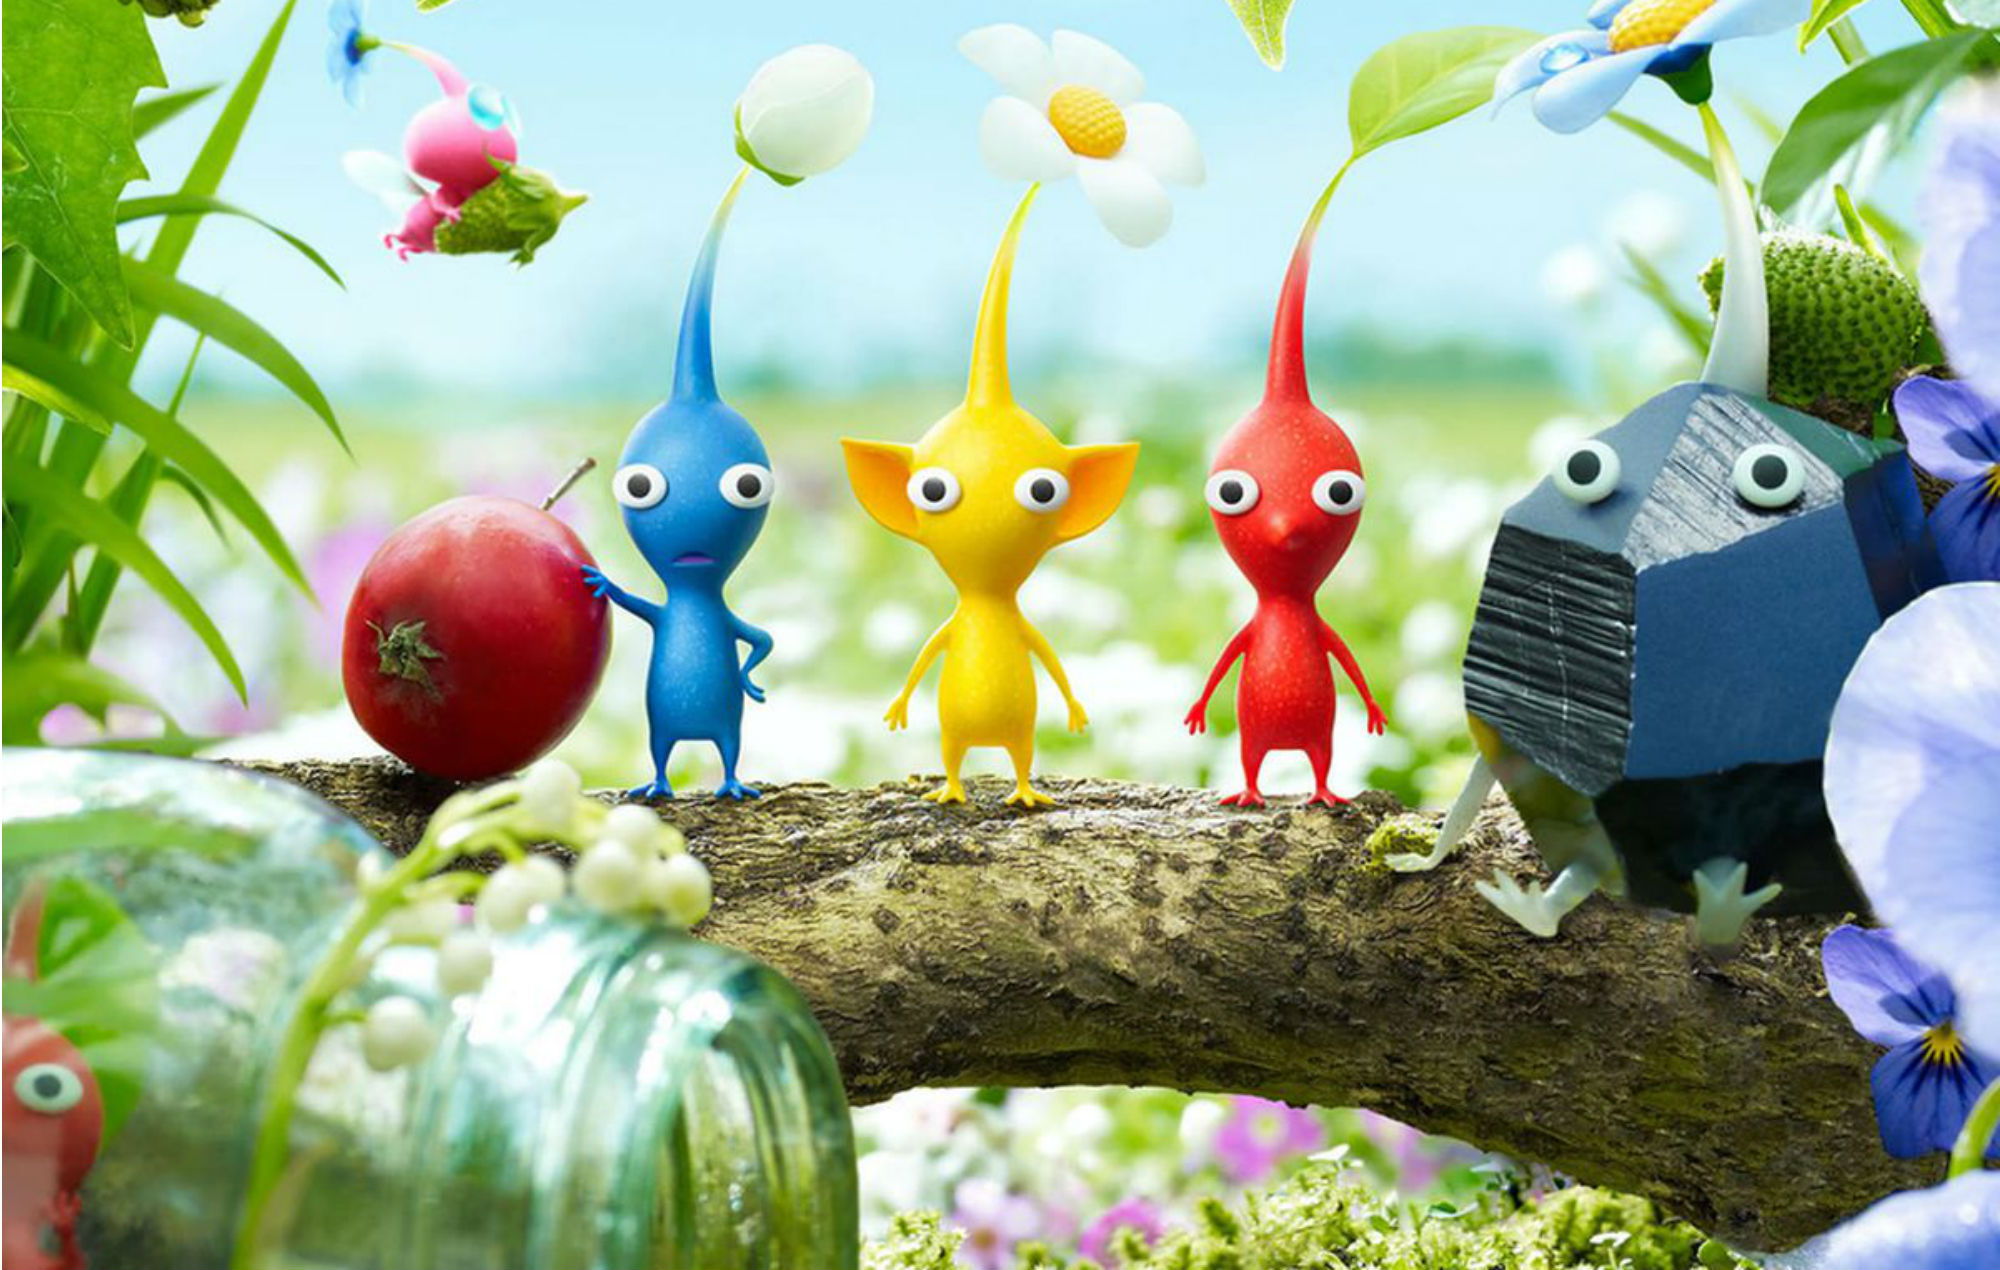 'Pikmin 3 Deluxe' is coming to Nintendo Switch later this year